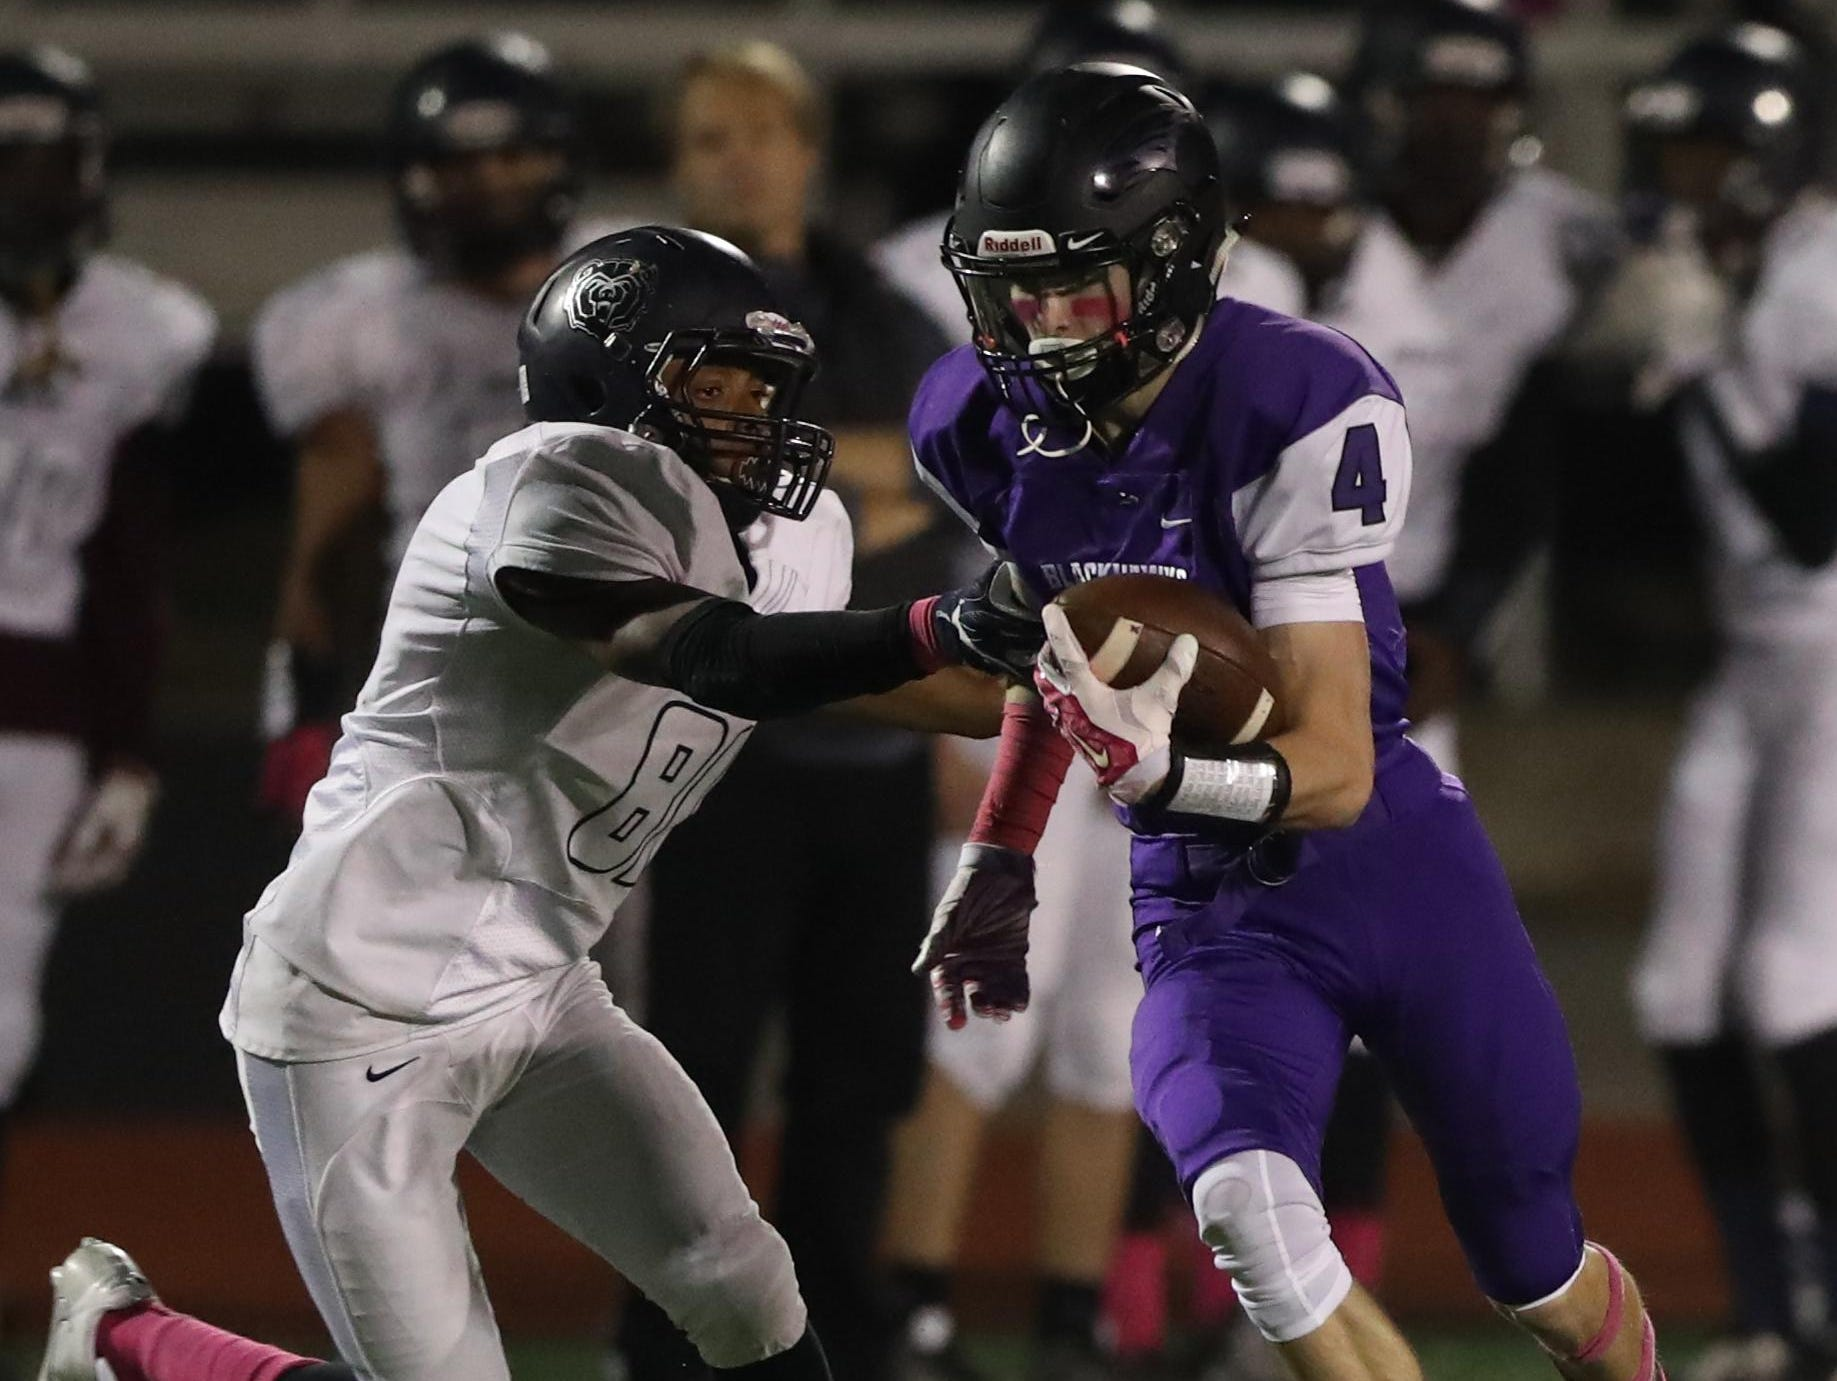 Bloomfield Hills' Ty Slazinski tries to elude a Berkley defender after catching a pass in Friday night's game.